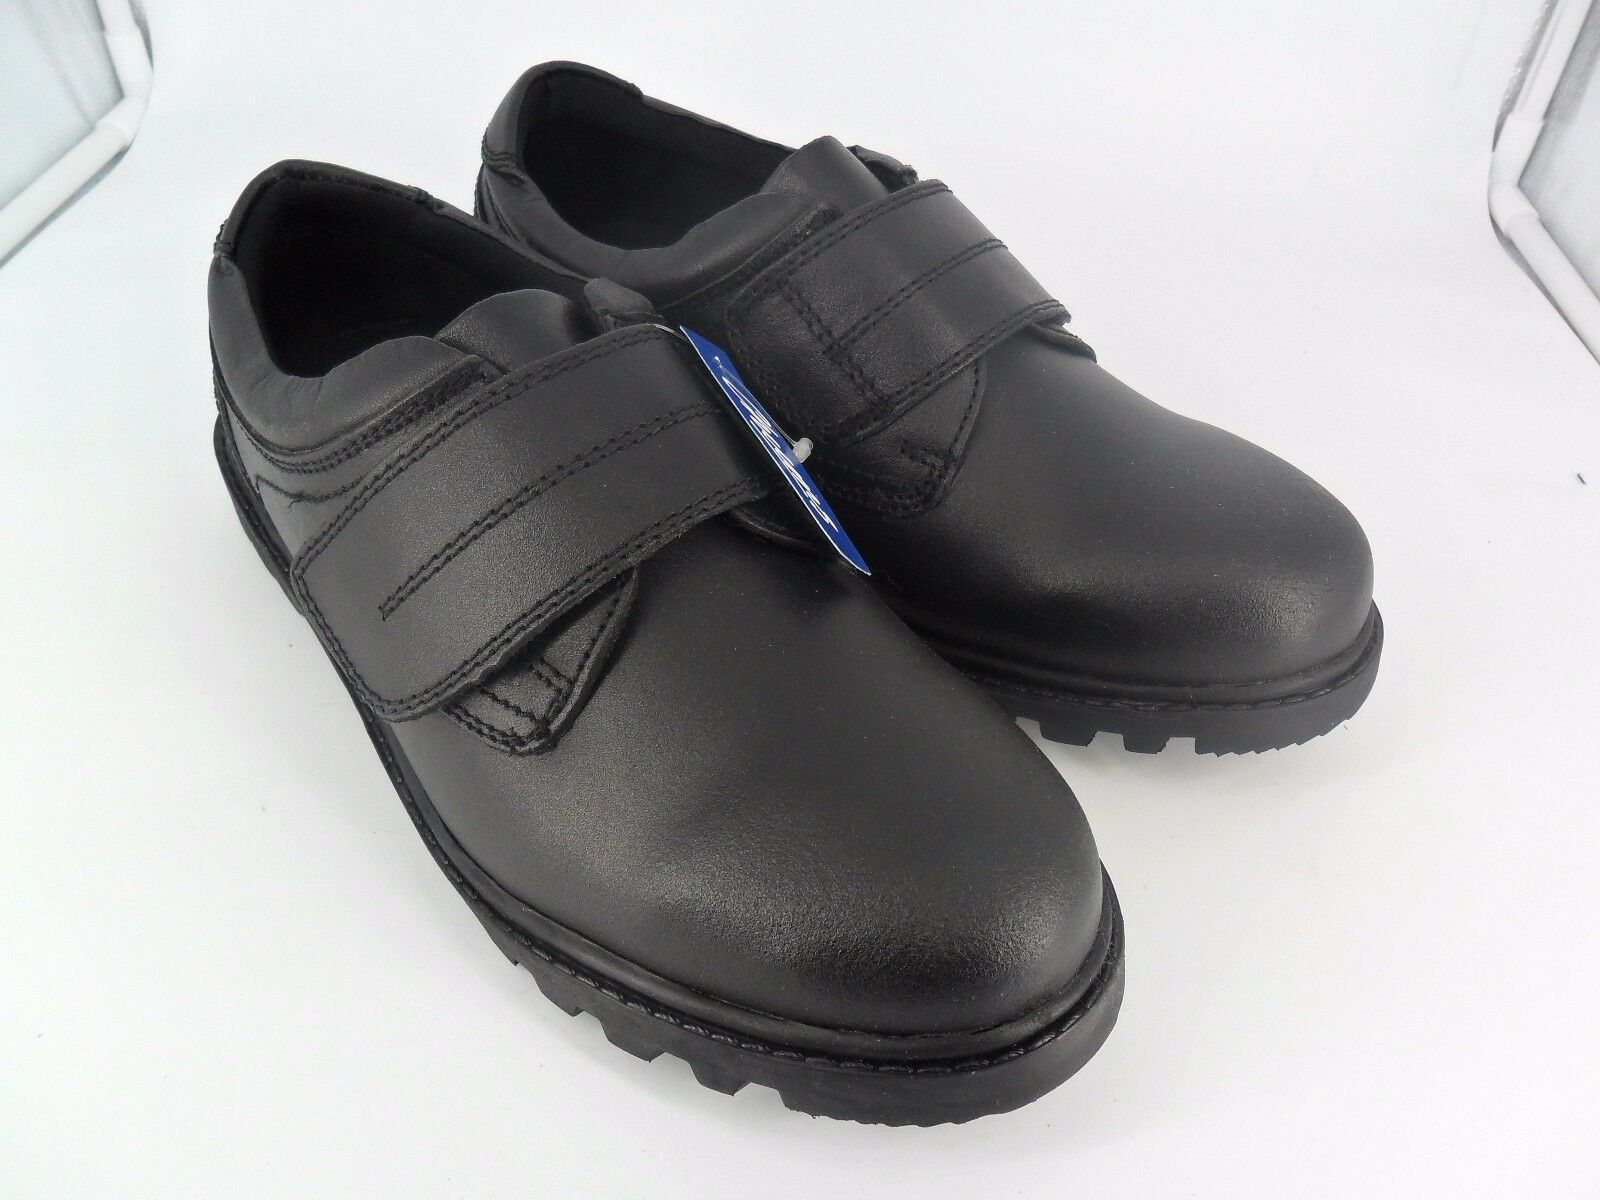 Chums Leather Touch Fastening Walking shoes Black UK 8 EU 42 JS092 RR 04